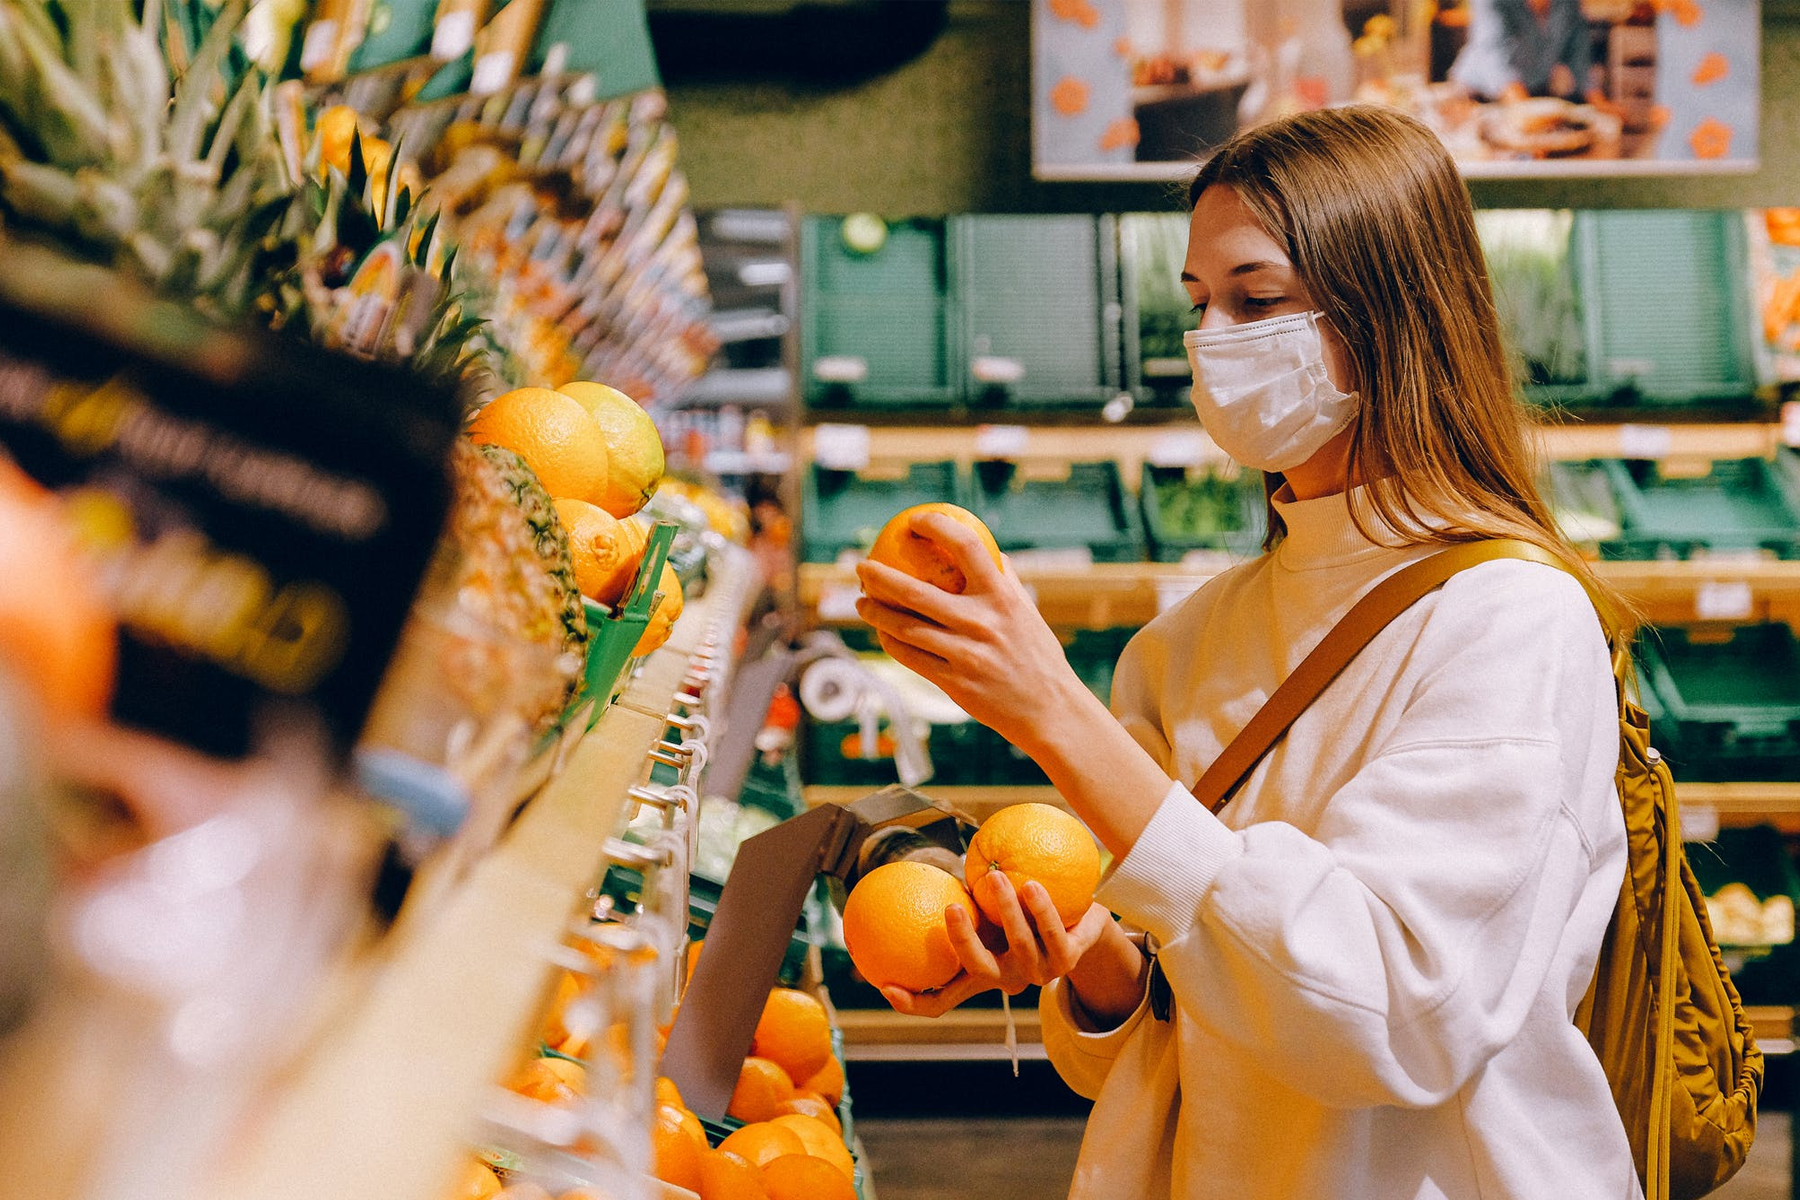 customer in a grocery store with a face mask on